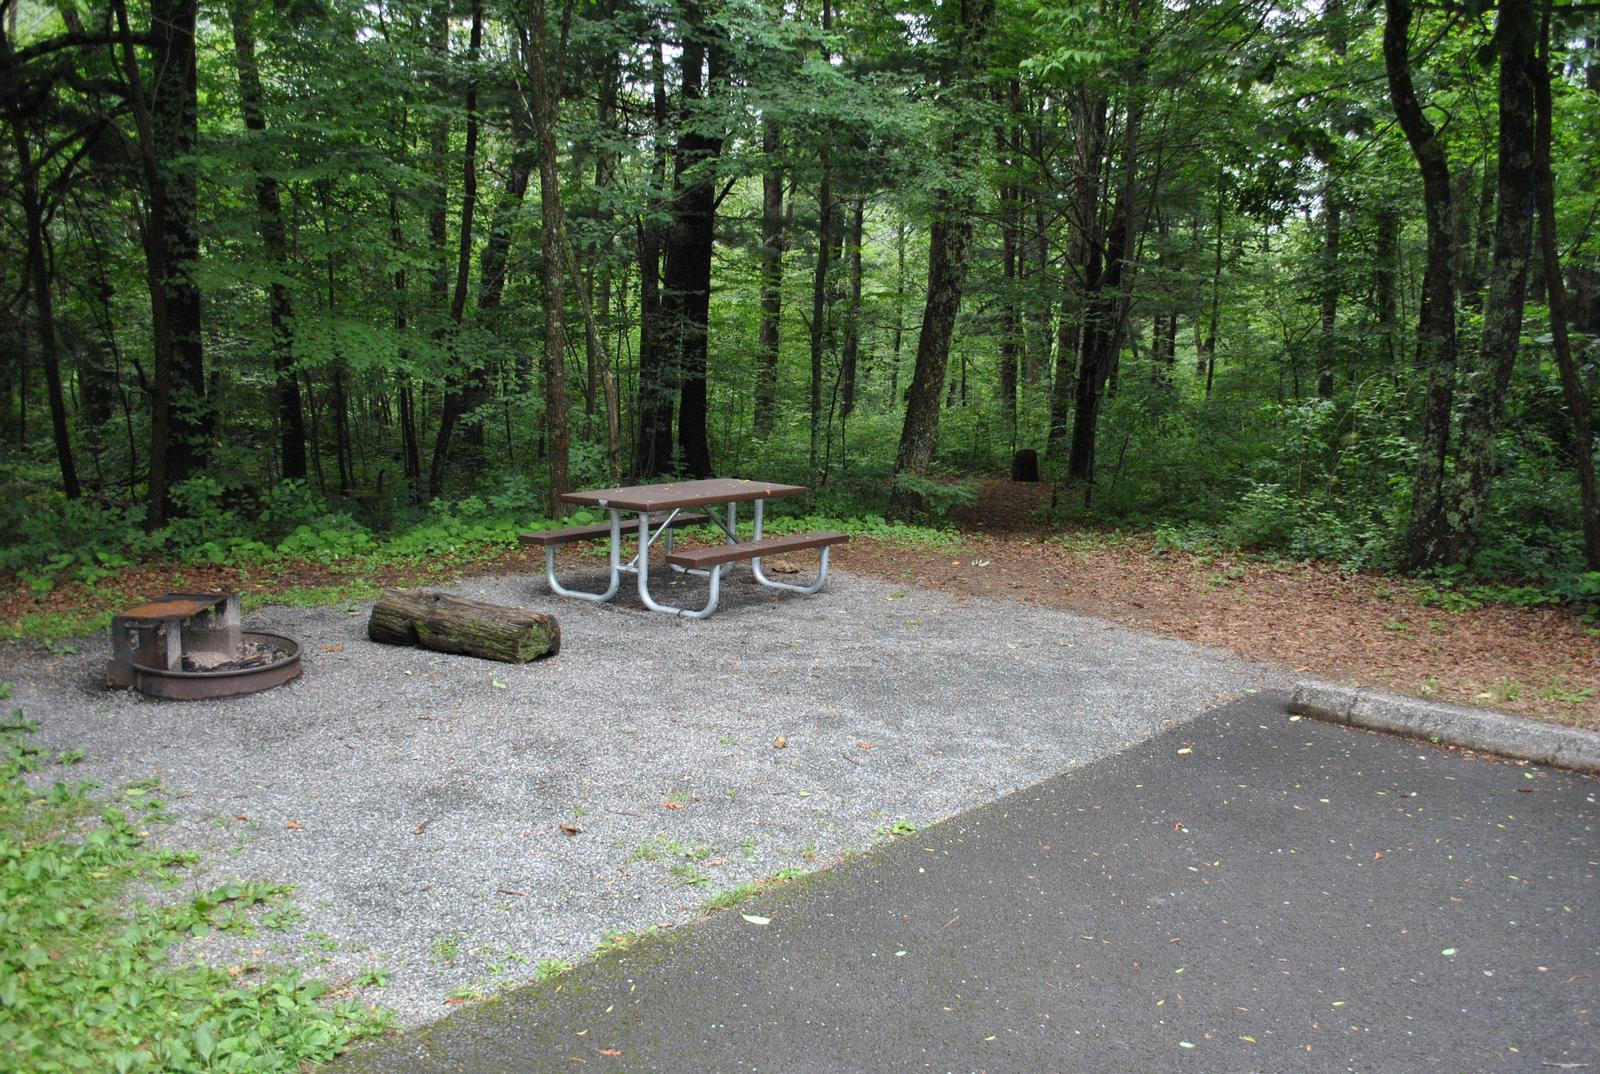 Mathews Arm Campground – Site A110